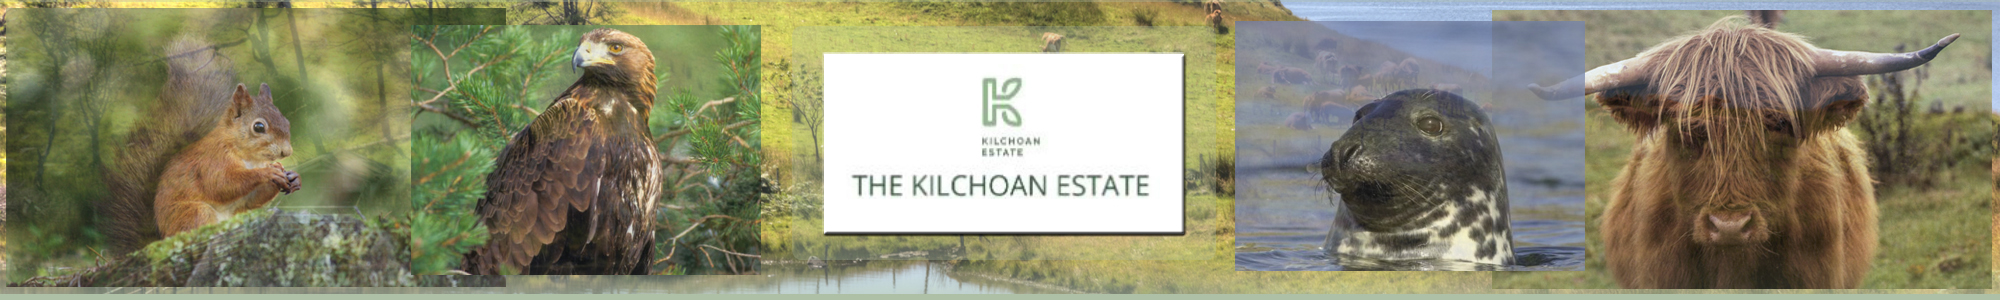 Kilchoan Management Limited